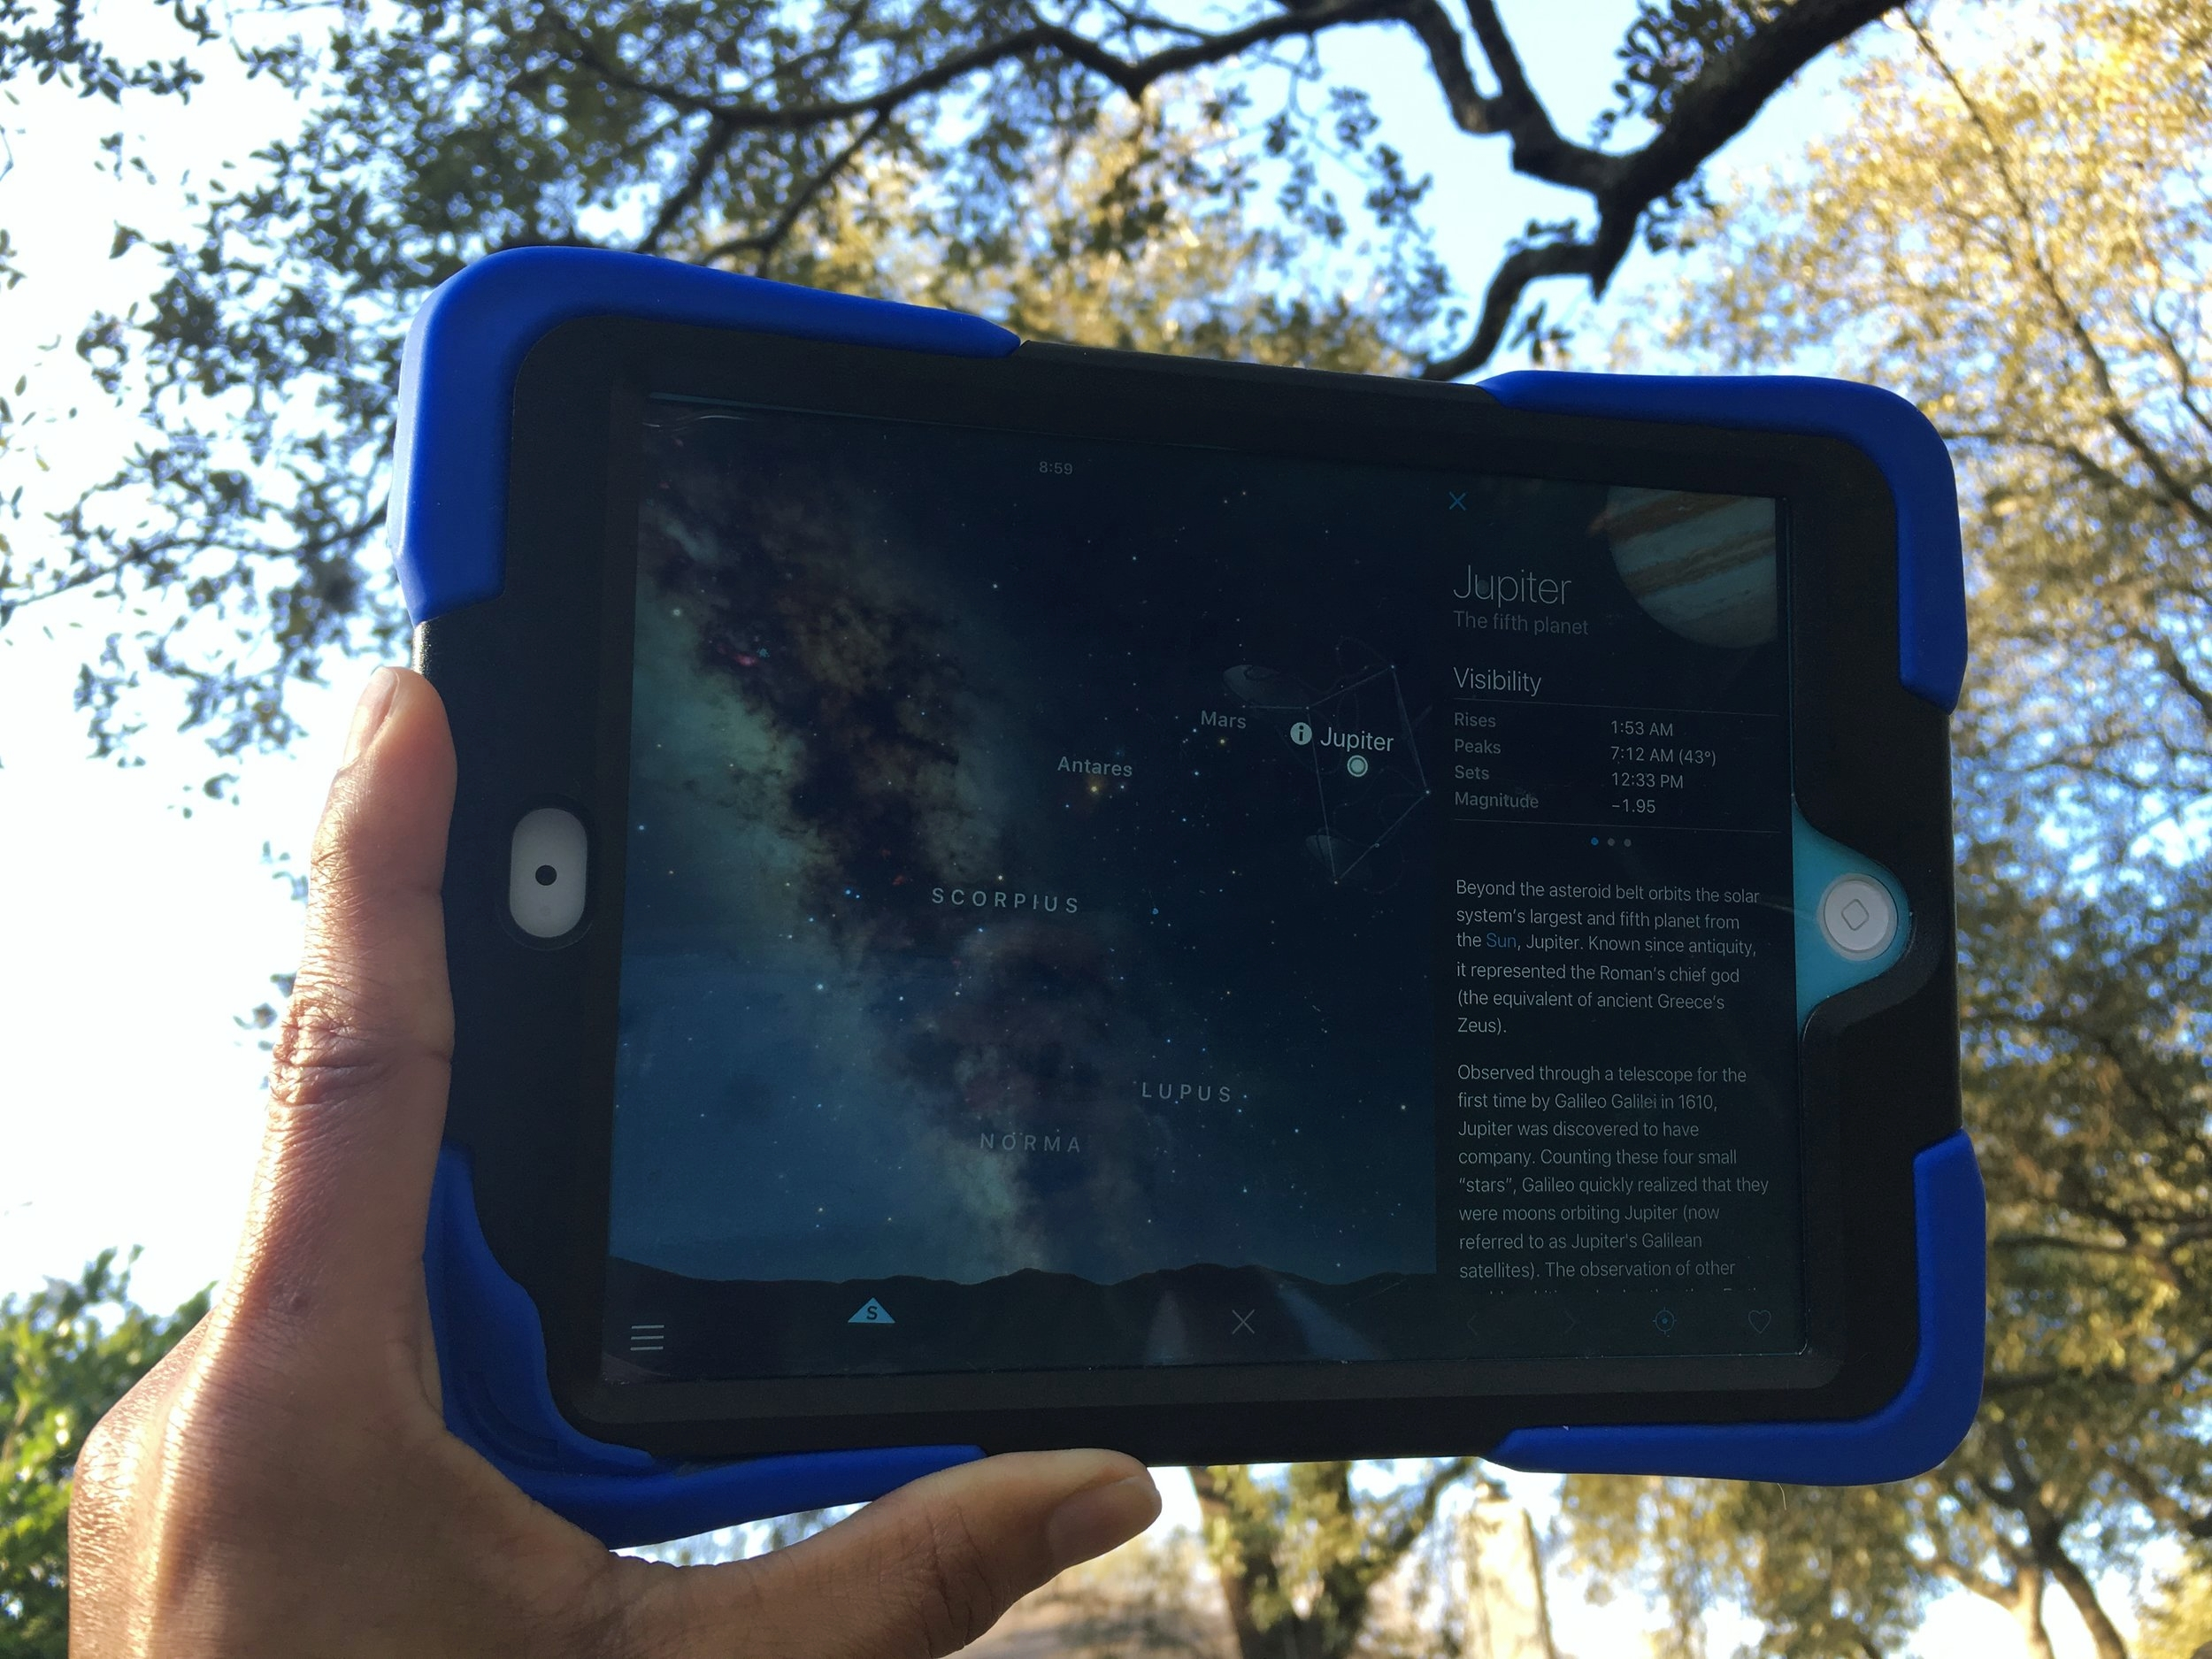 Sky Guide in use on the iPad